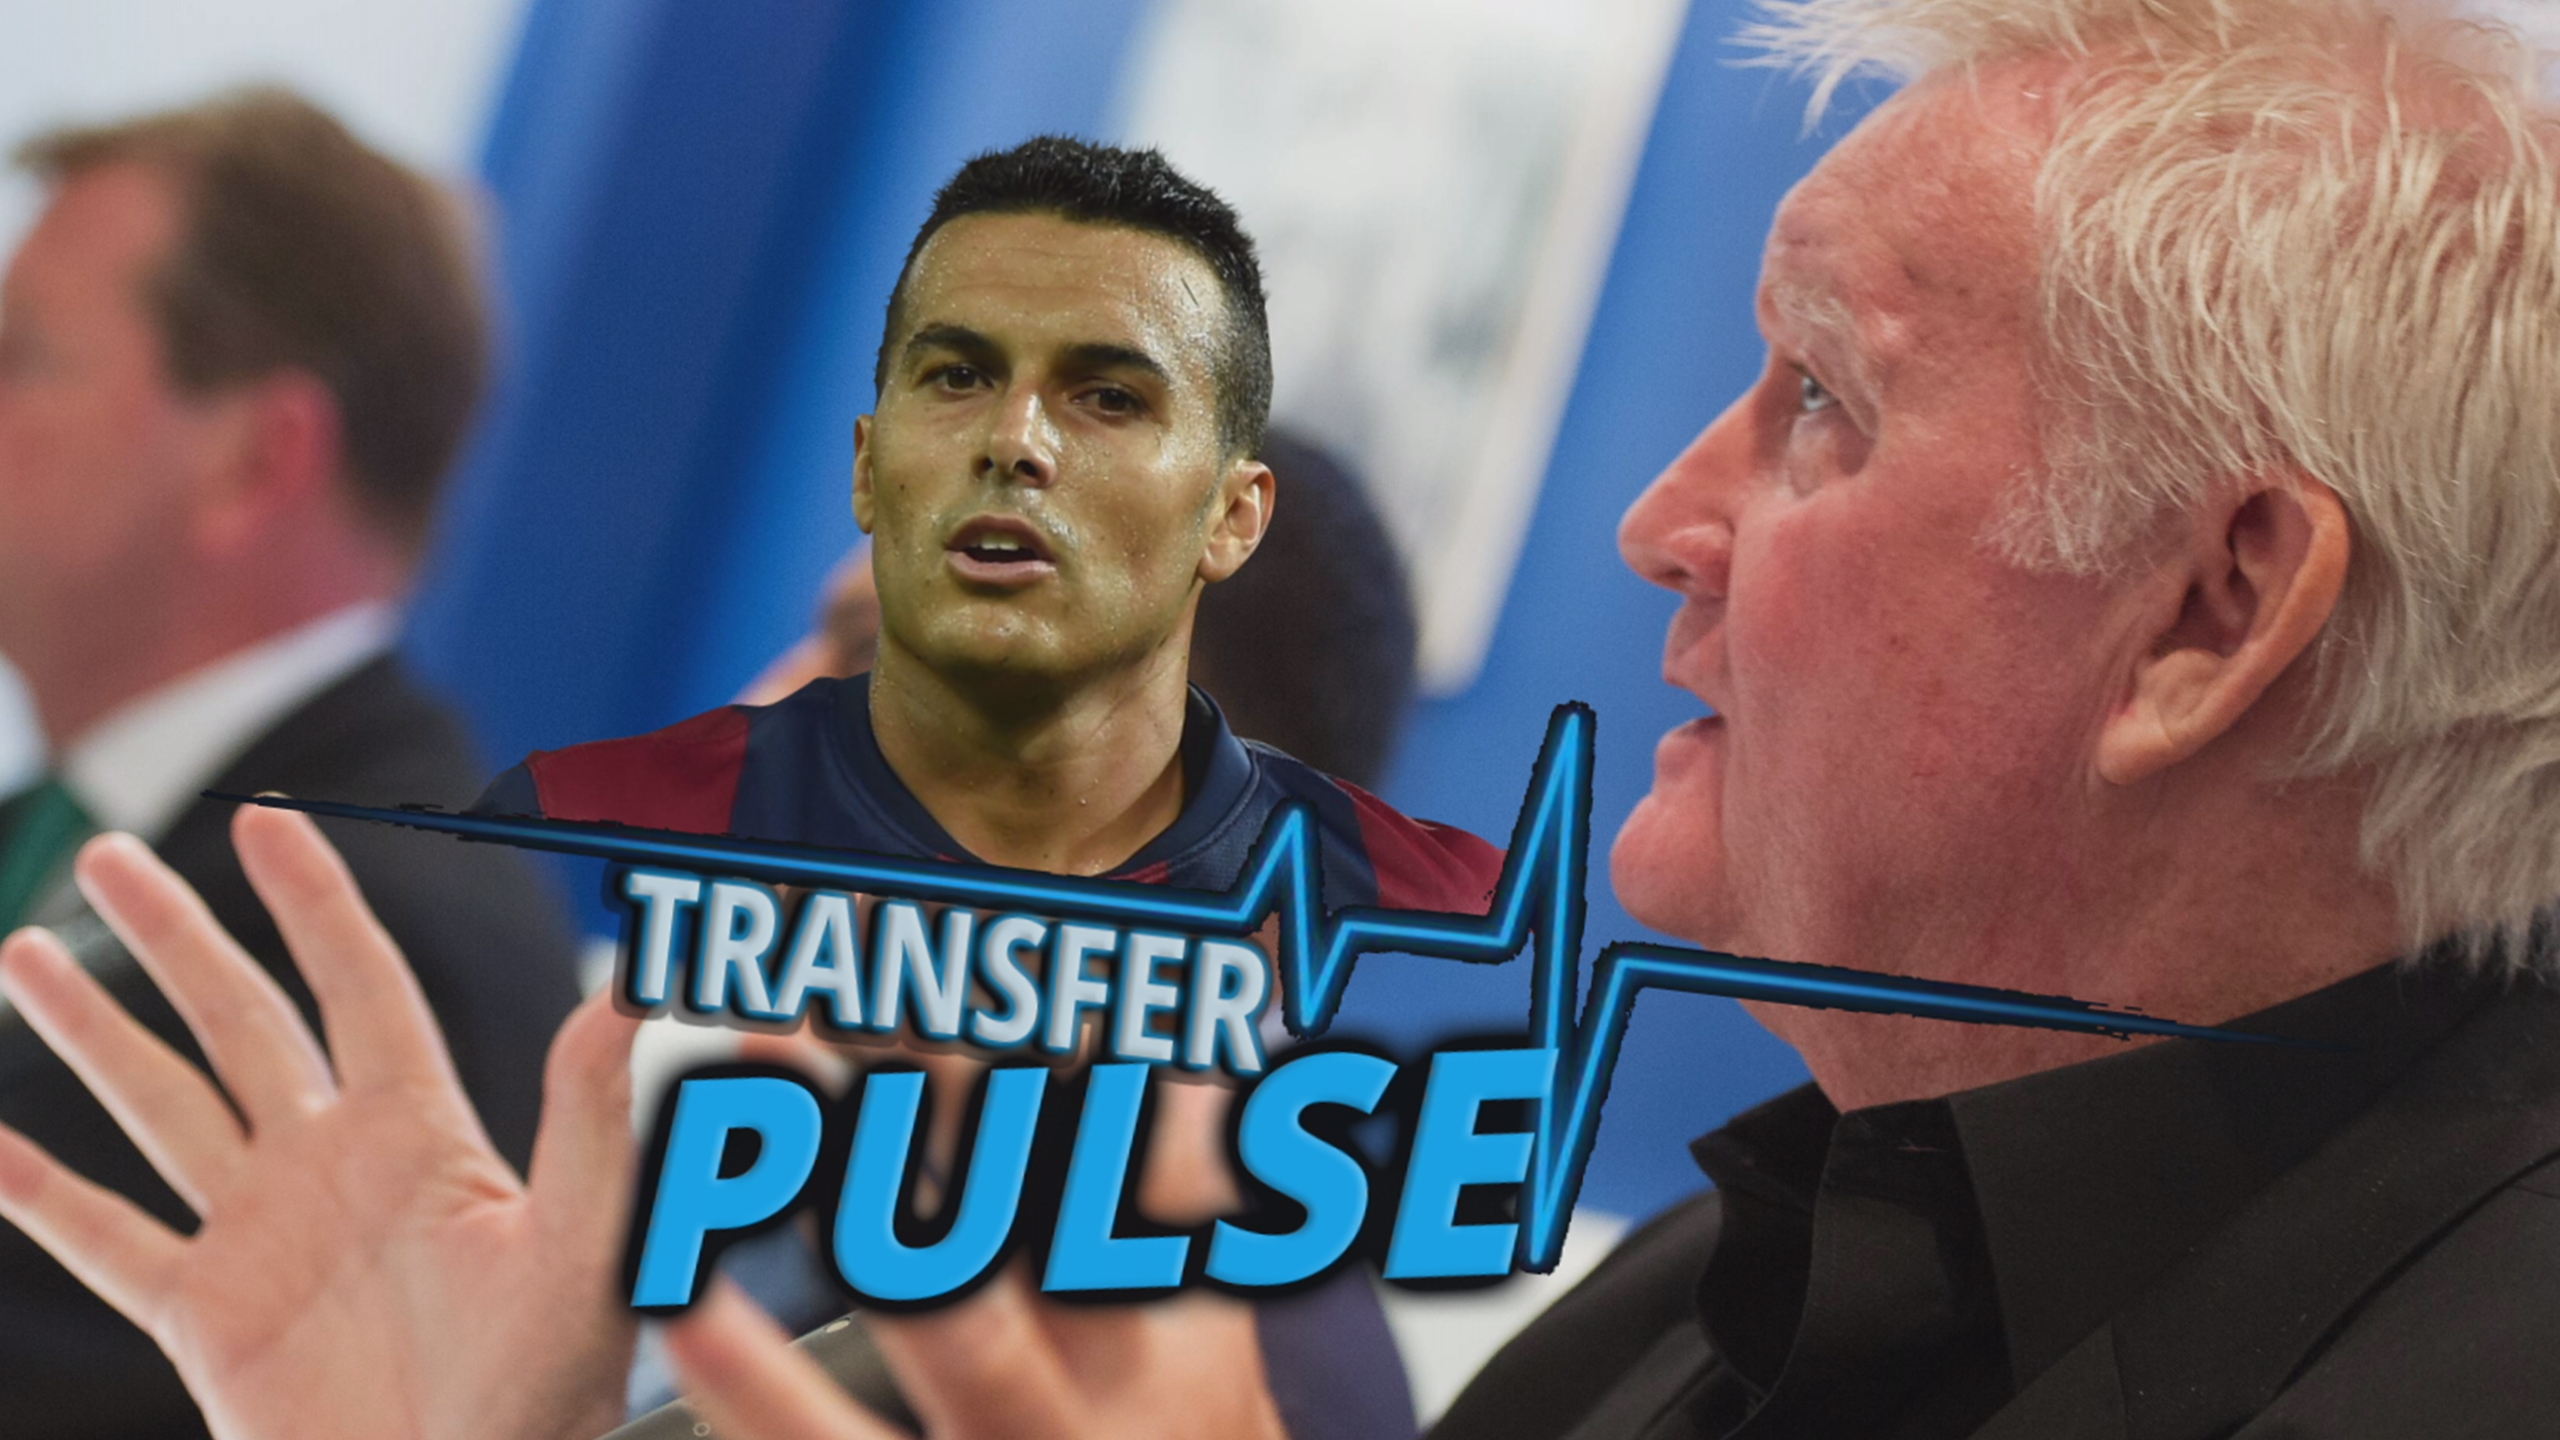 Pedro dominates the trends - while Rodney Marsh is a fountain of knowledge? - Transfer Pulse